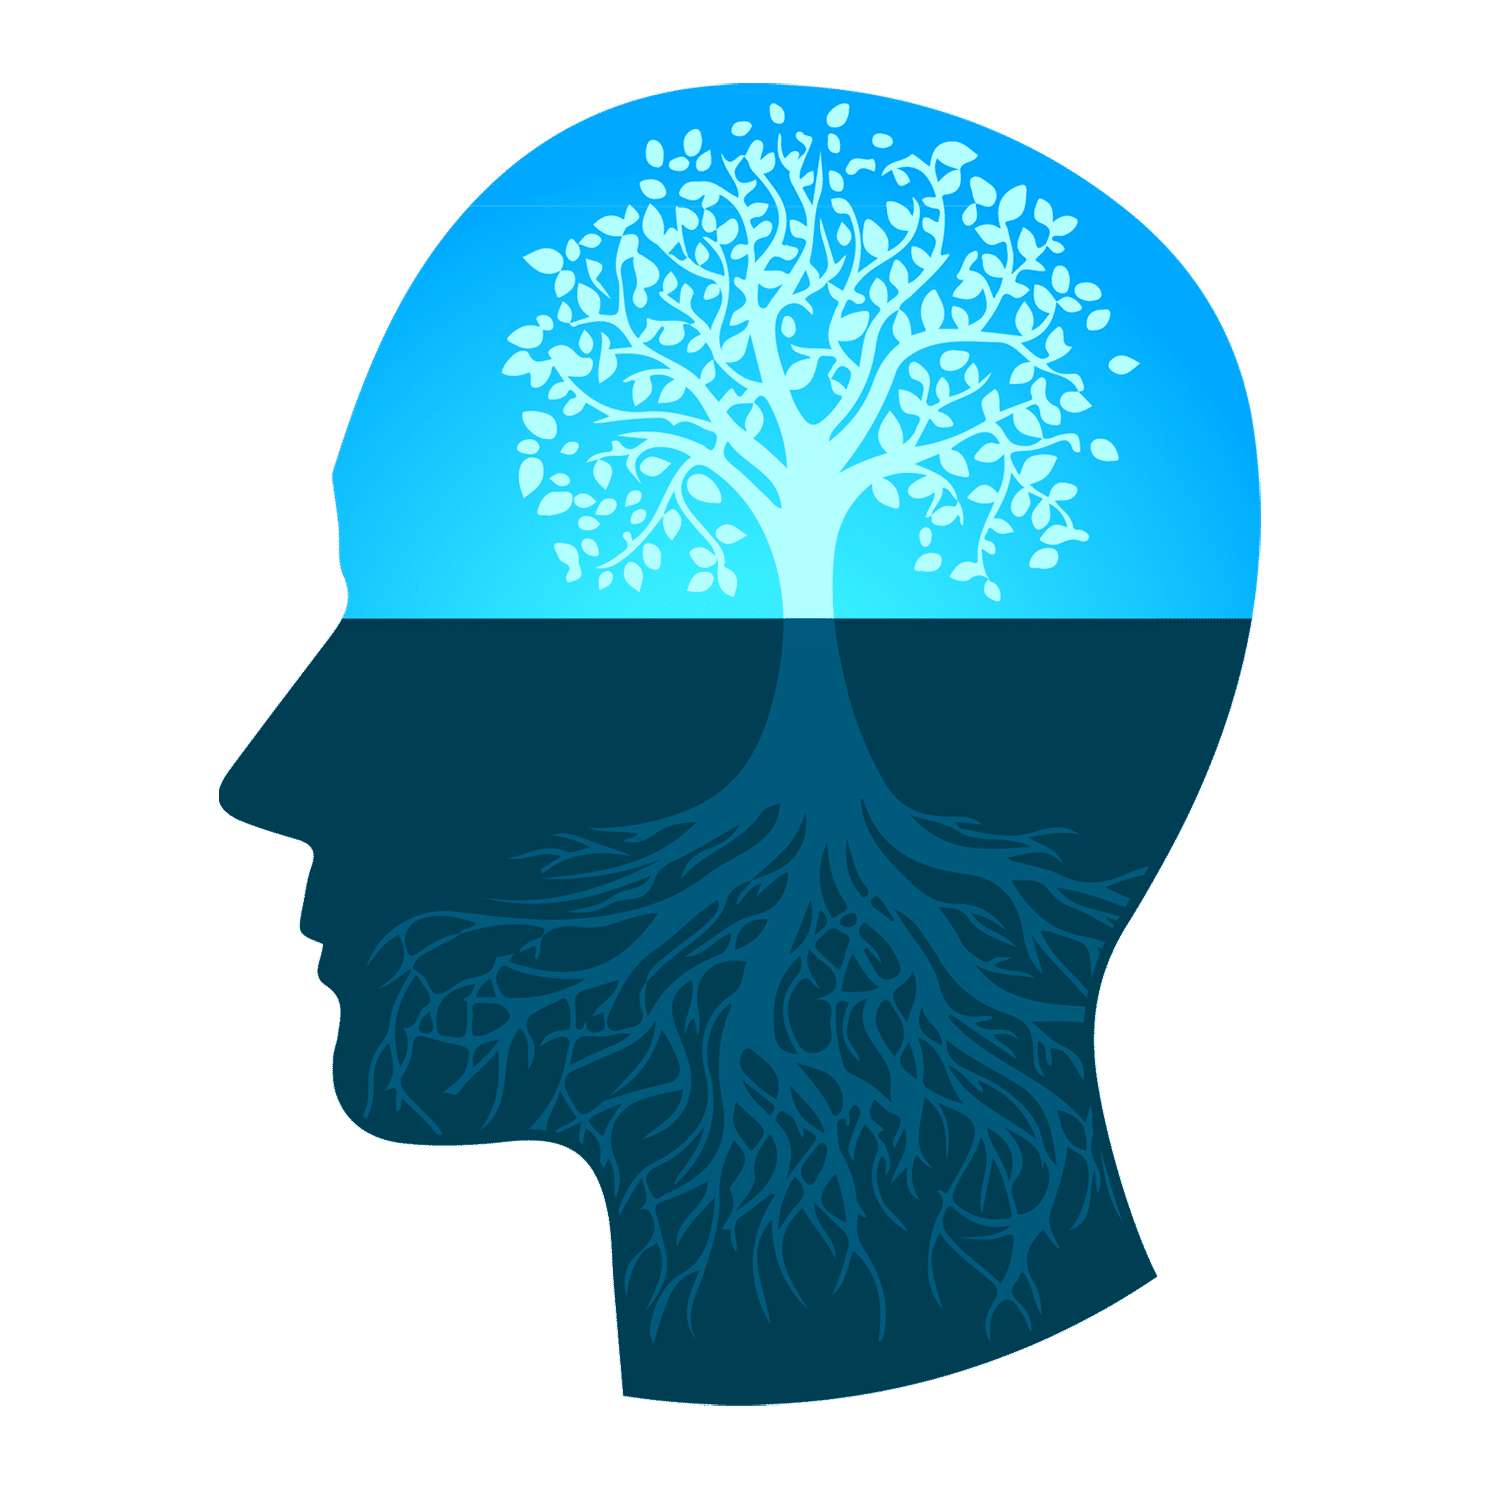 To Grow or Not, is a Mindset